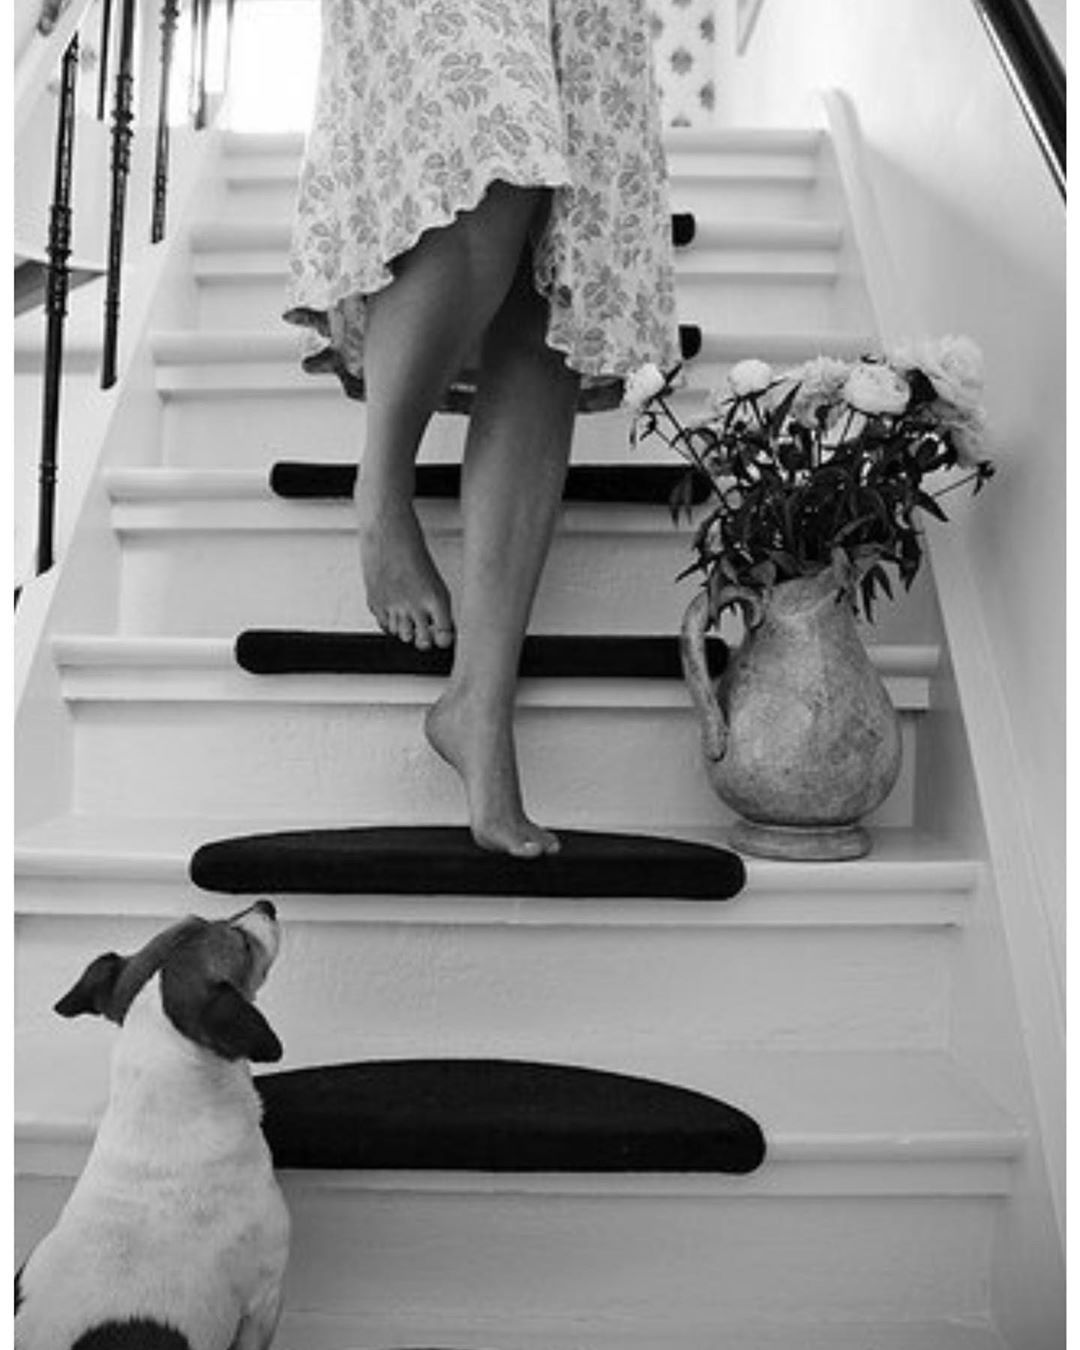 Pin by Live smarter on Puppies Black and white